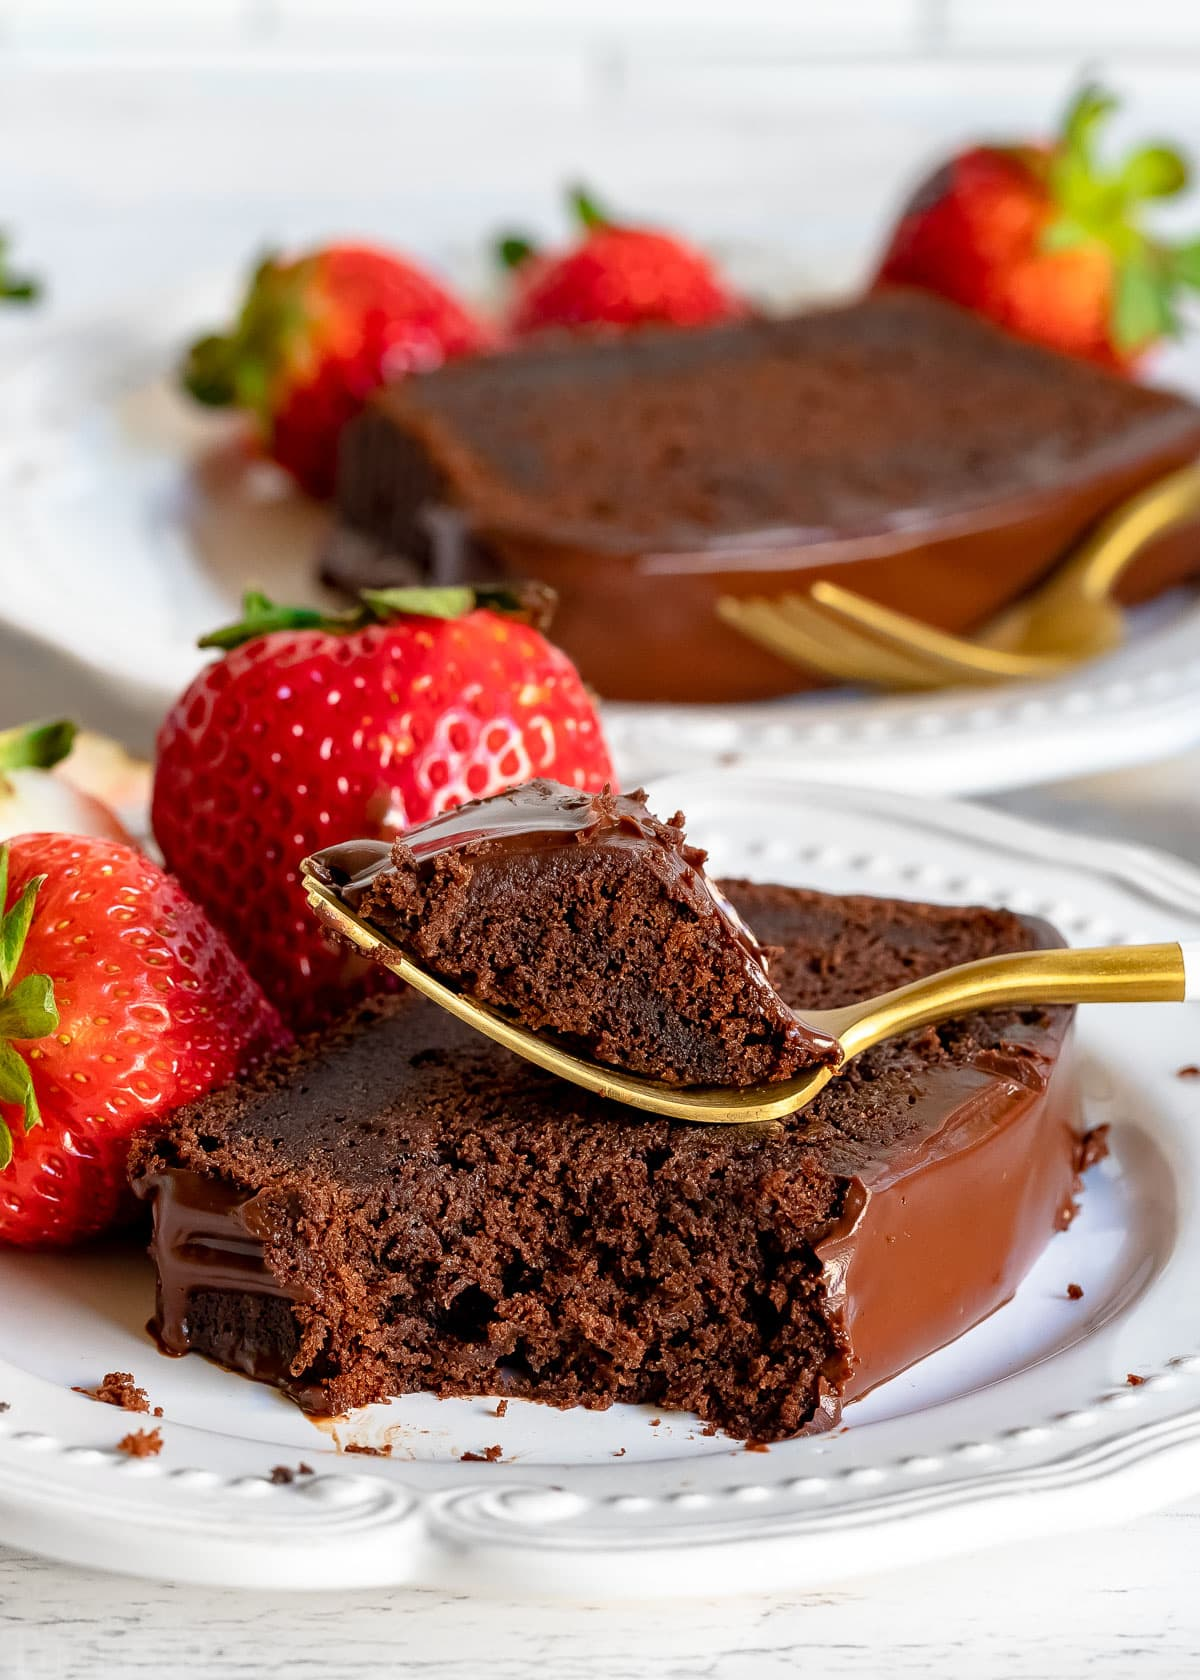 piece of chocolate pound cake with a forkful taken on a white plate with another piece in background served with strawberries